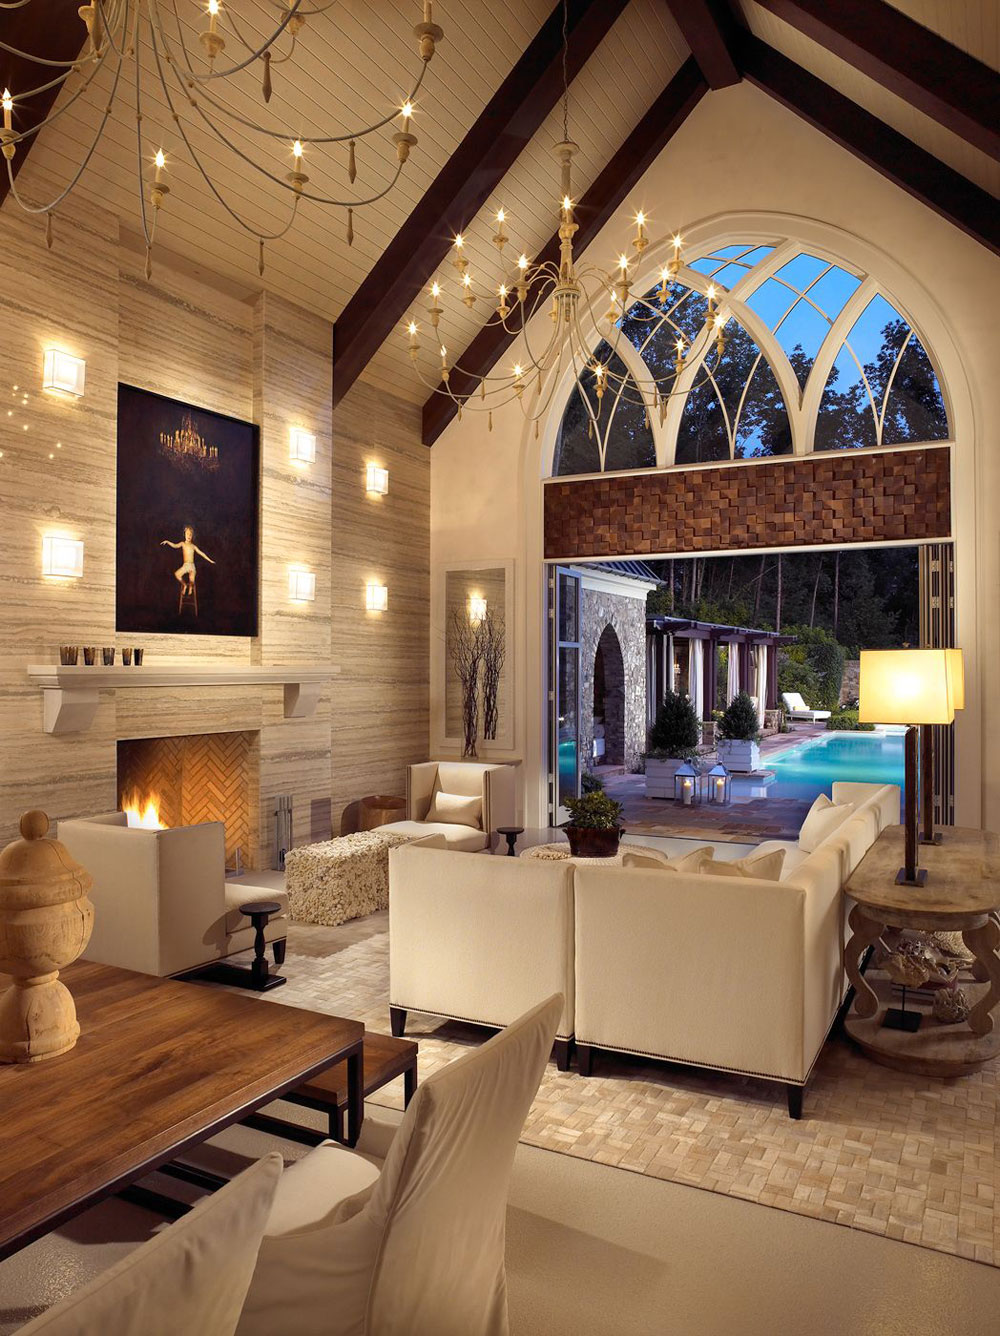 Vaulted Ceiling Living Room Design Ideas (1) - Vaulted Ceiling Living Room Design Ideas